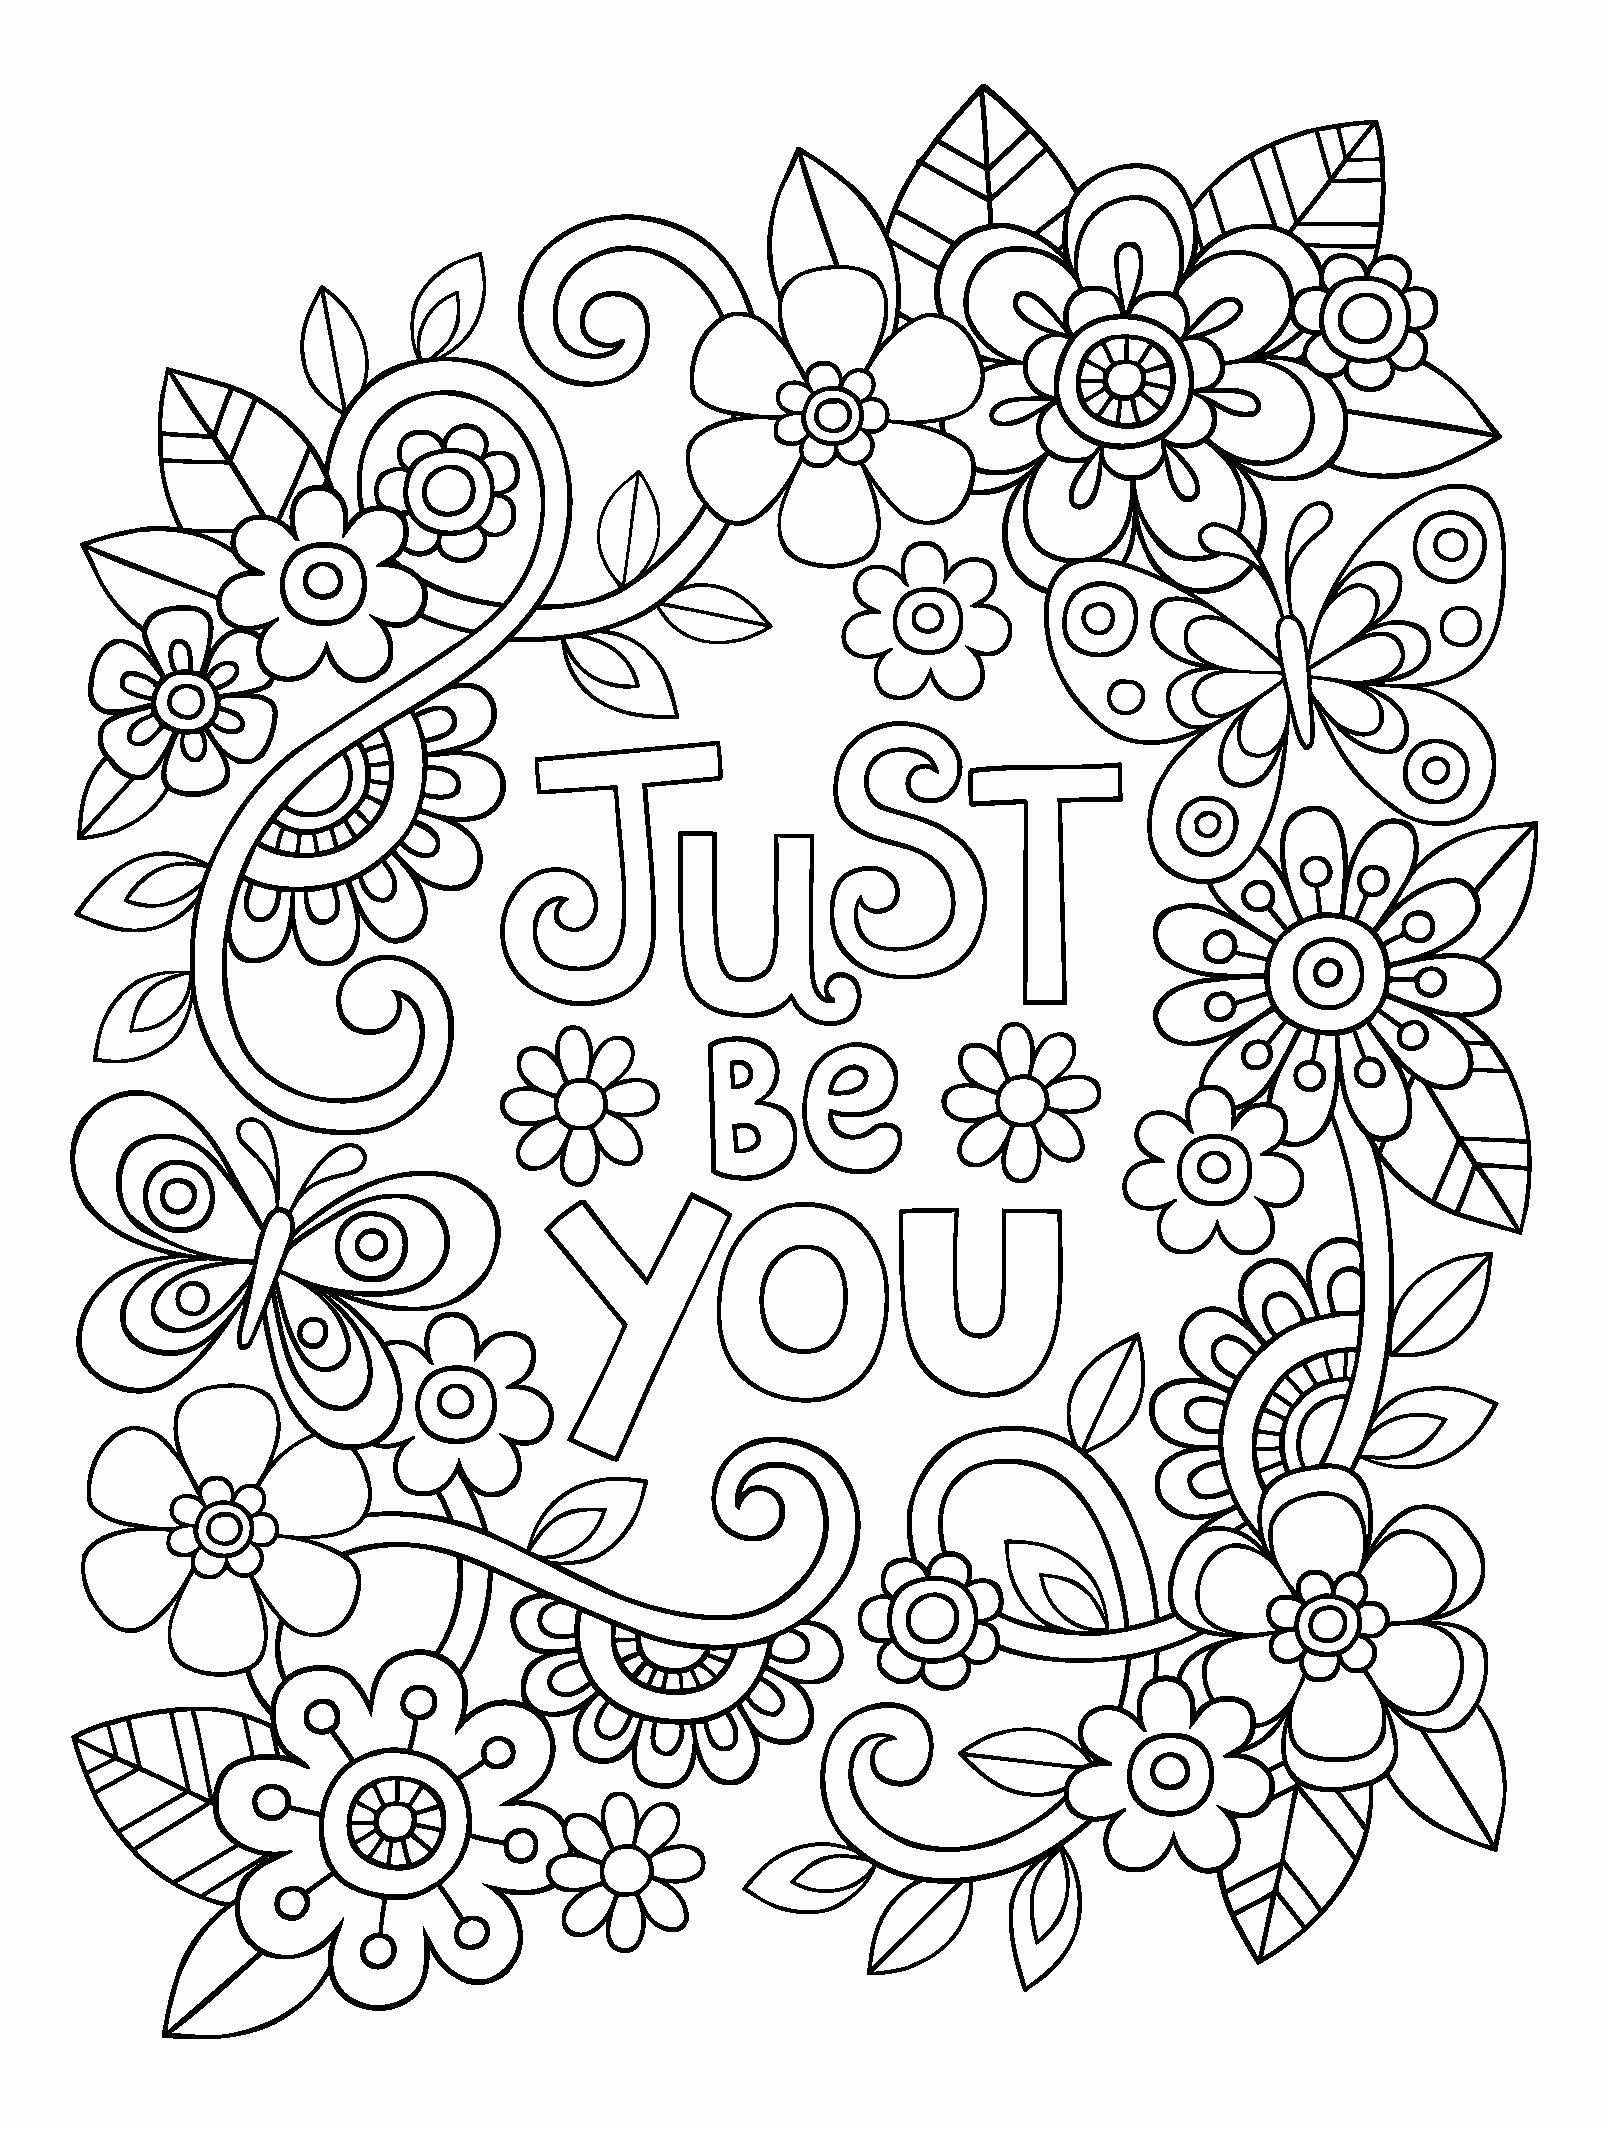 Disney Quote Coloring Pages Elegant Related Image Color Me Quotes Pinterest Martin Chan Coloring Pages Inspirational Quote Coloring Pages Coloring Book Pages